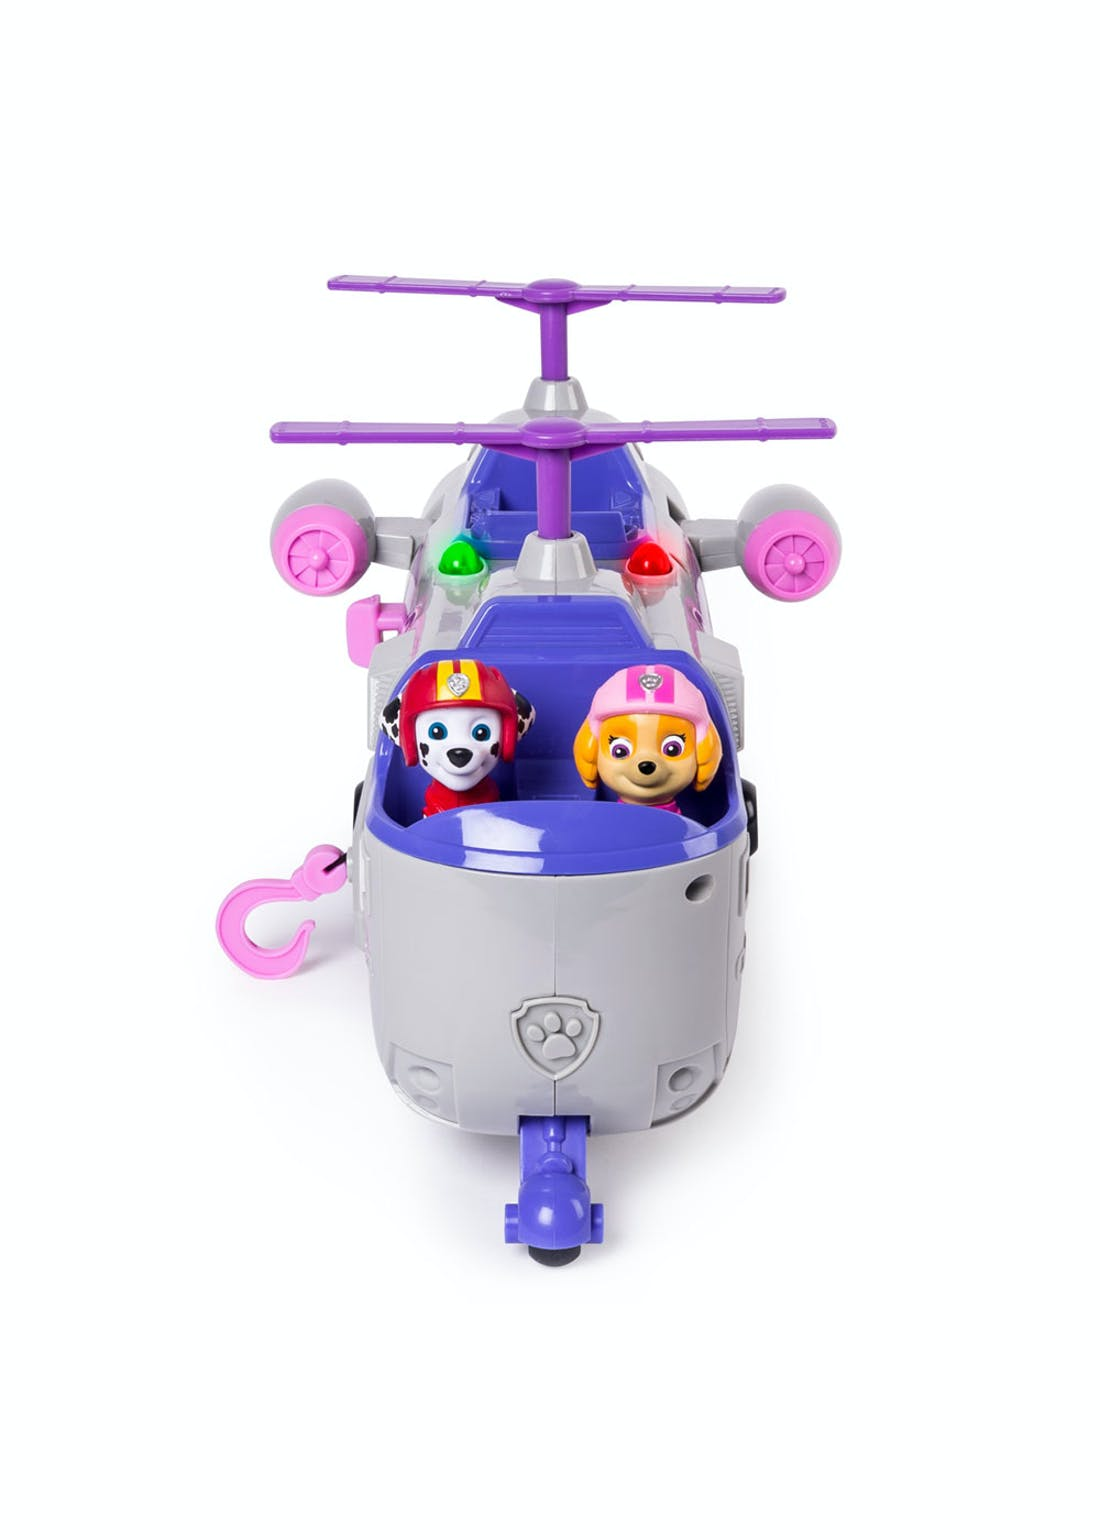 Paw Patrol Skye's Ultimate Rescue Helicopter (40.5cm x 36.5cm x 16cm)